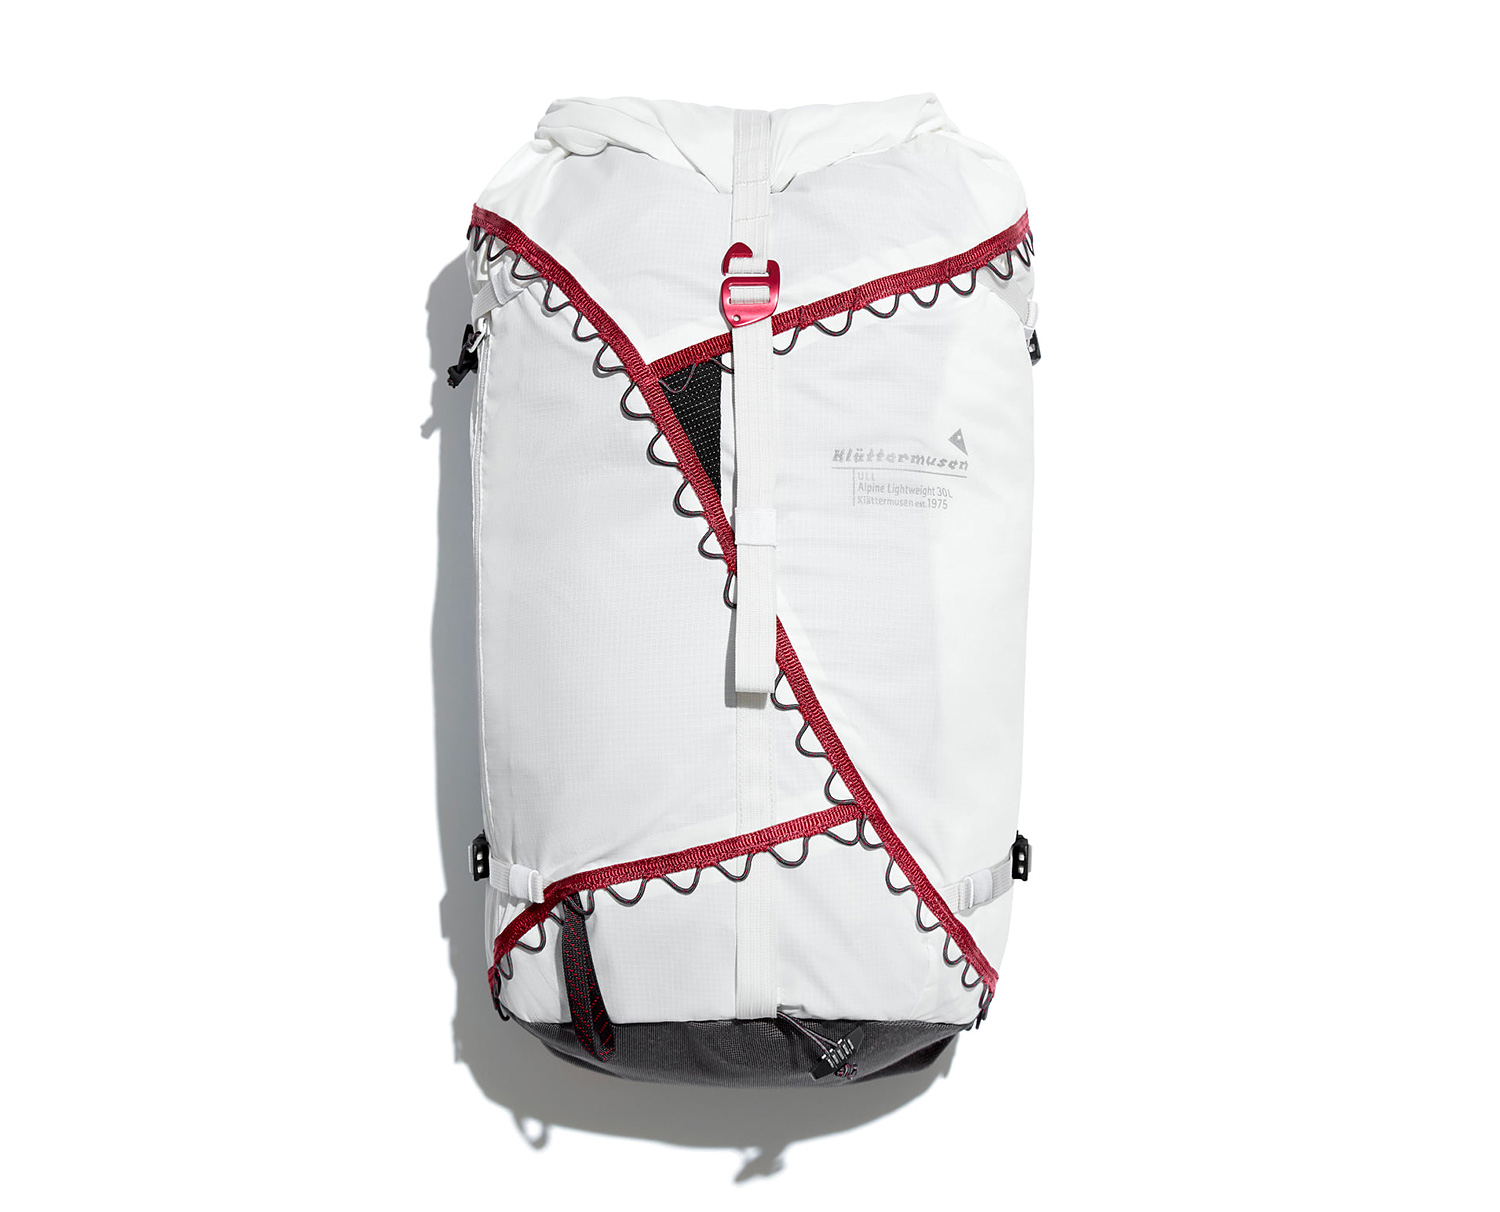 Klättermusen's Ull Blot is a Tech Pack for Ski Days & More at werd.com